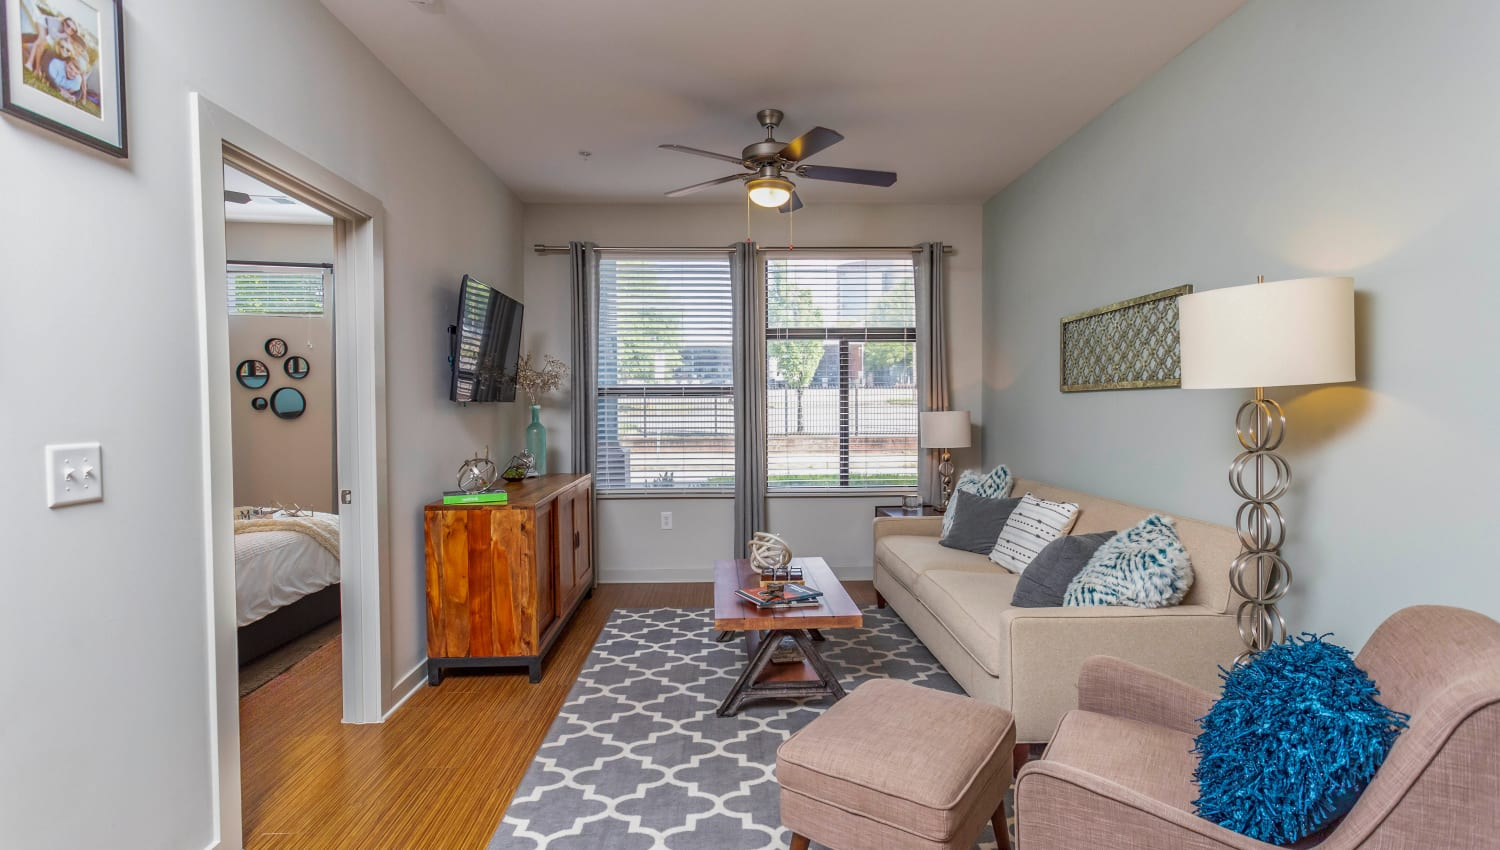 Comfortably furnished living space in a model apartment at Olympus Midtown in Nashville, Tennessee